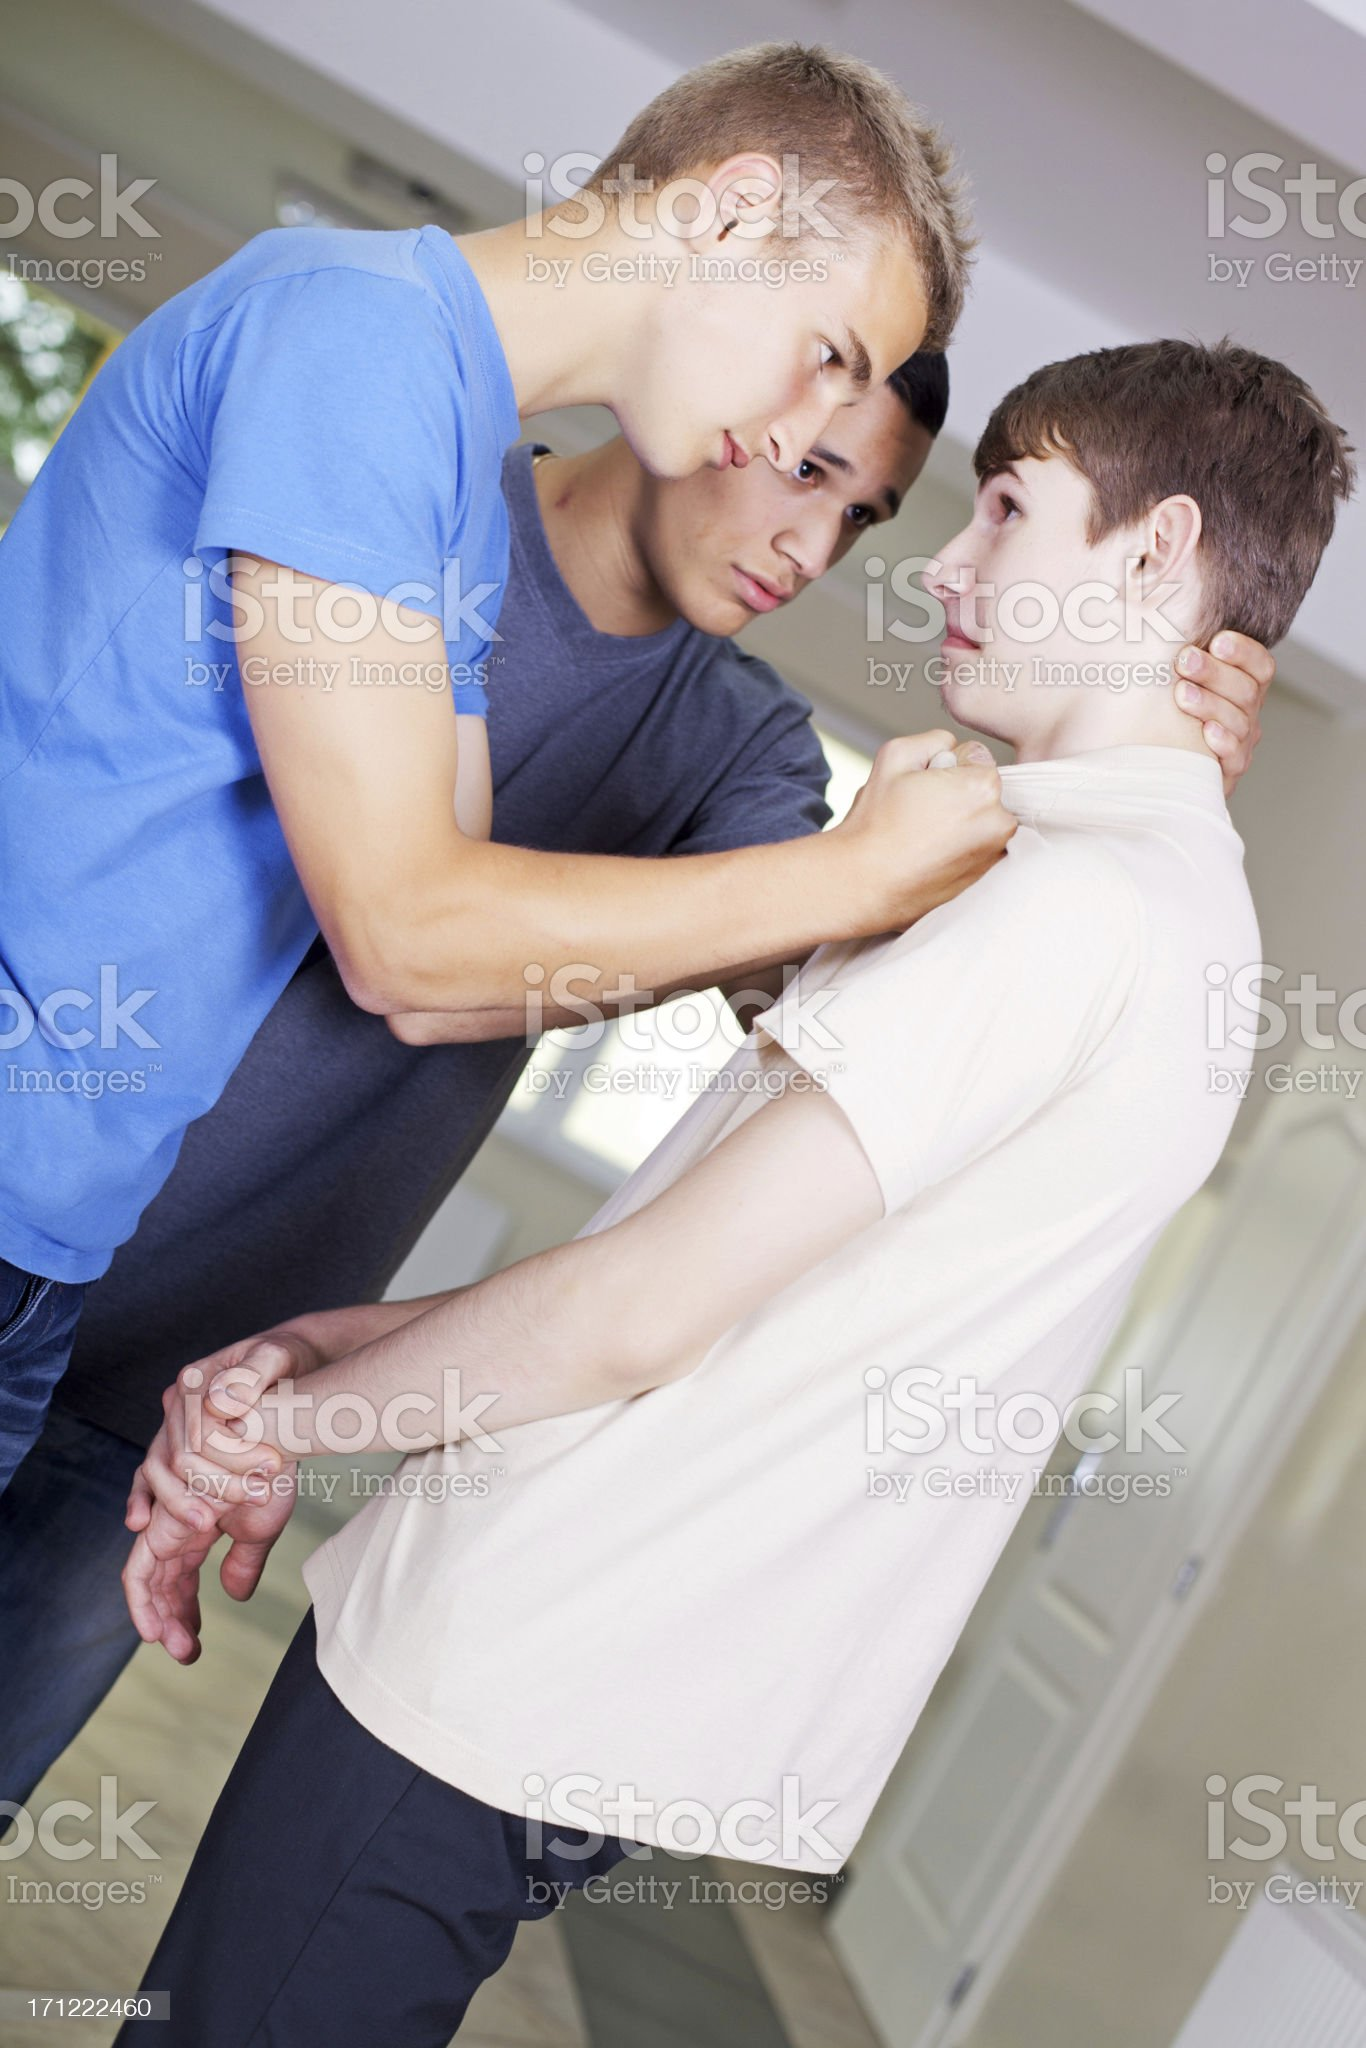 Teenage boys bullying their classmate. royalty-free stock photo